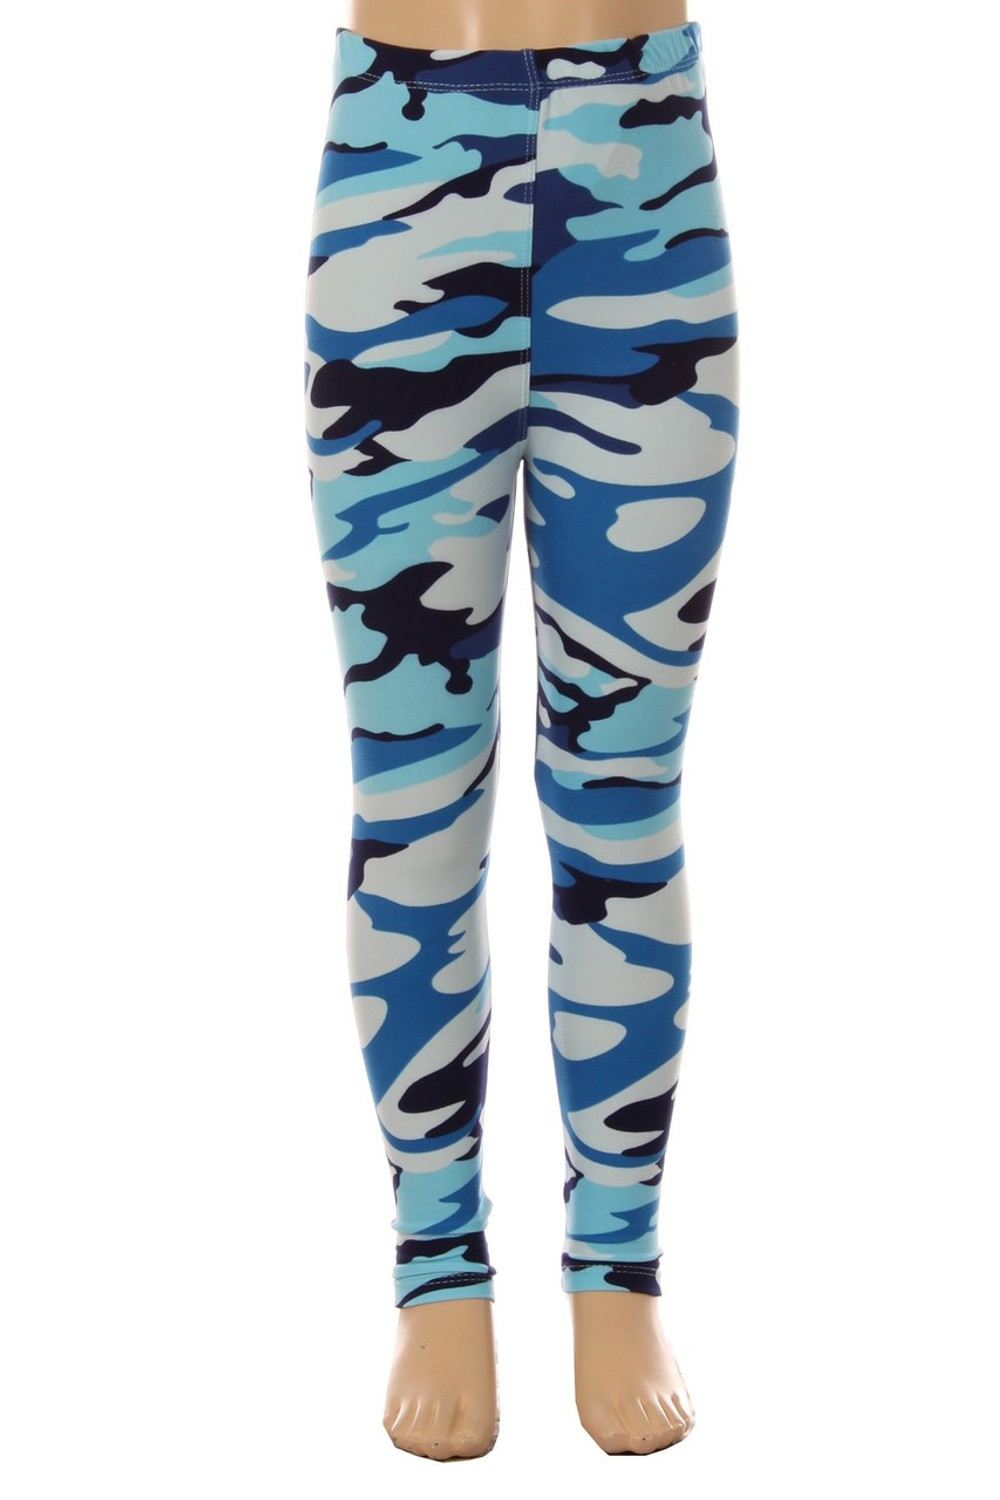 Pink Camo Amazing Buttery Soft Leggings Pick From Kid's-Women